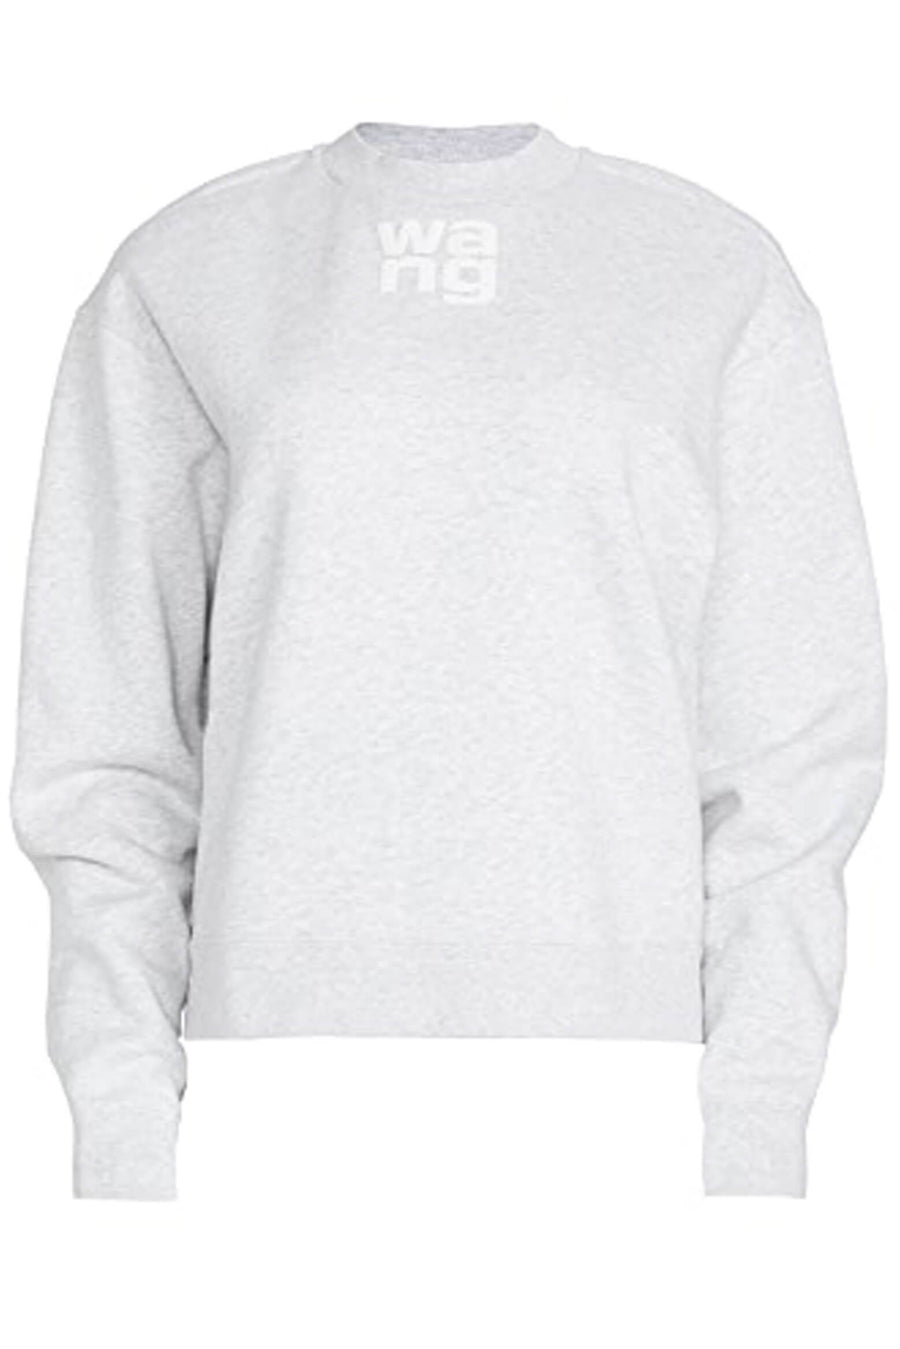 T by Alexander Wang Foundation Terry Crewneck Sweatshirt at The New Trend Women's luxury fashion label